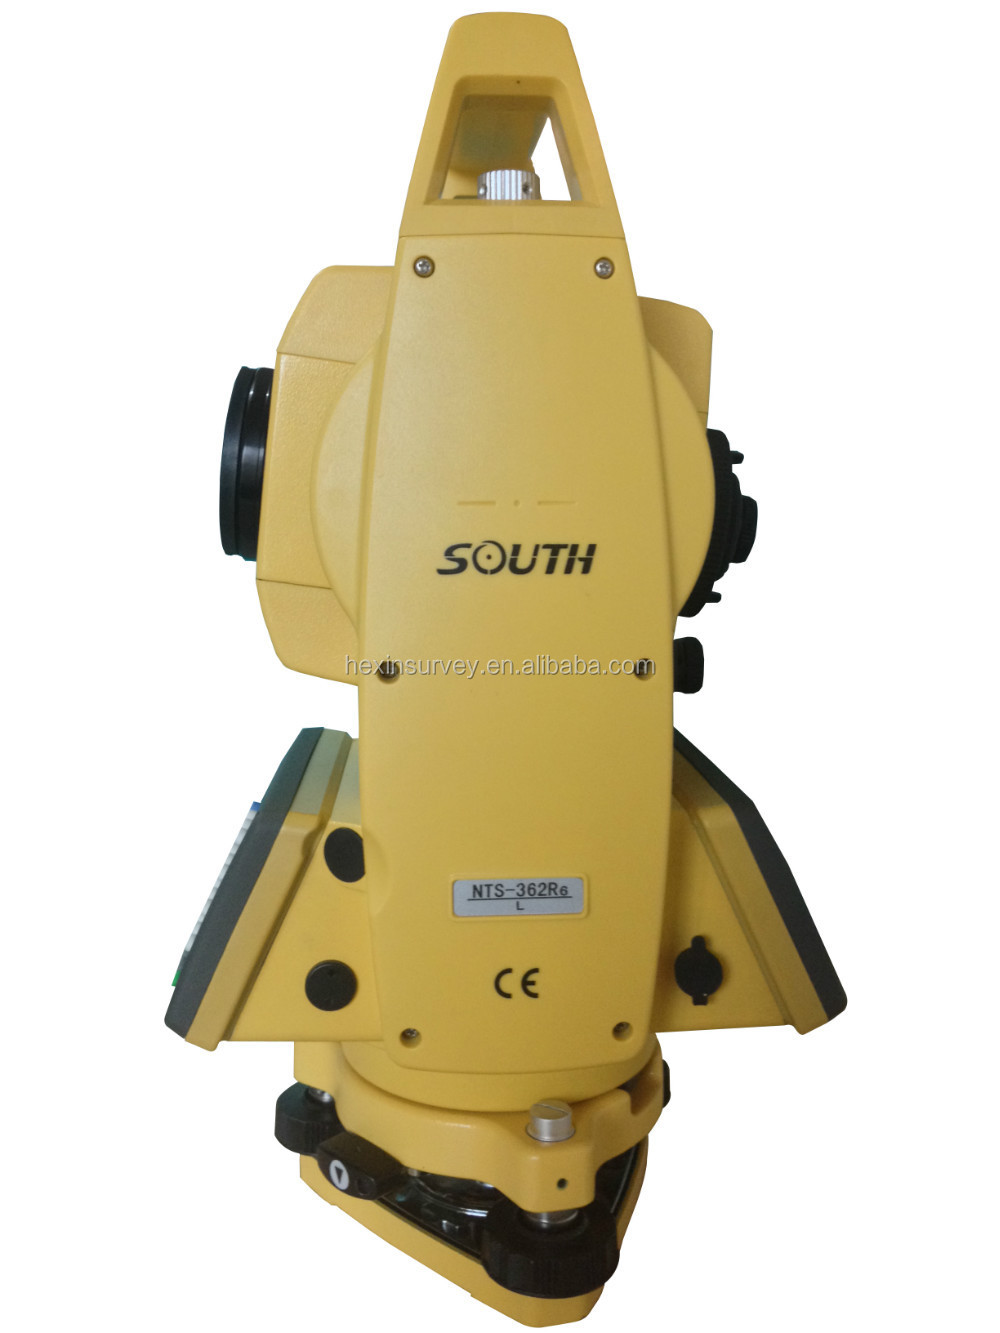 South NTS362R6 total station (12).jpg